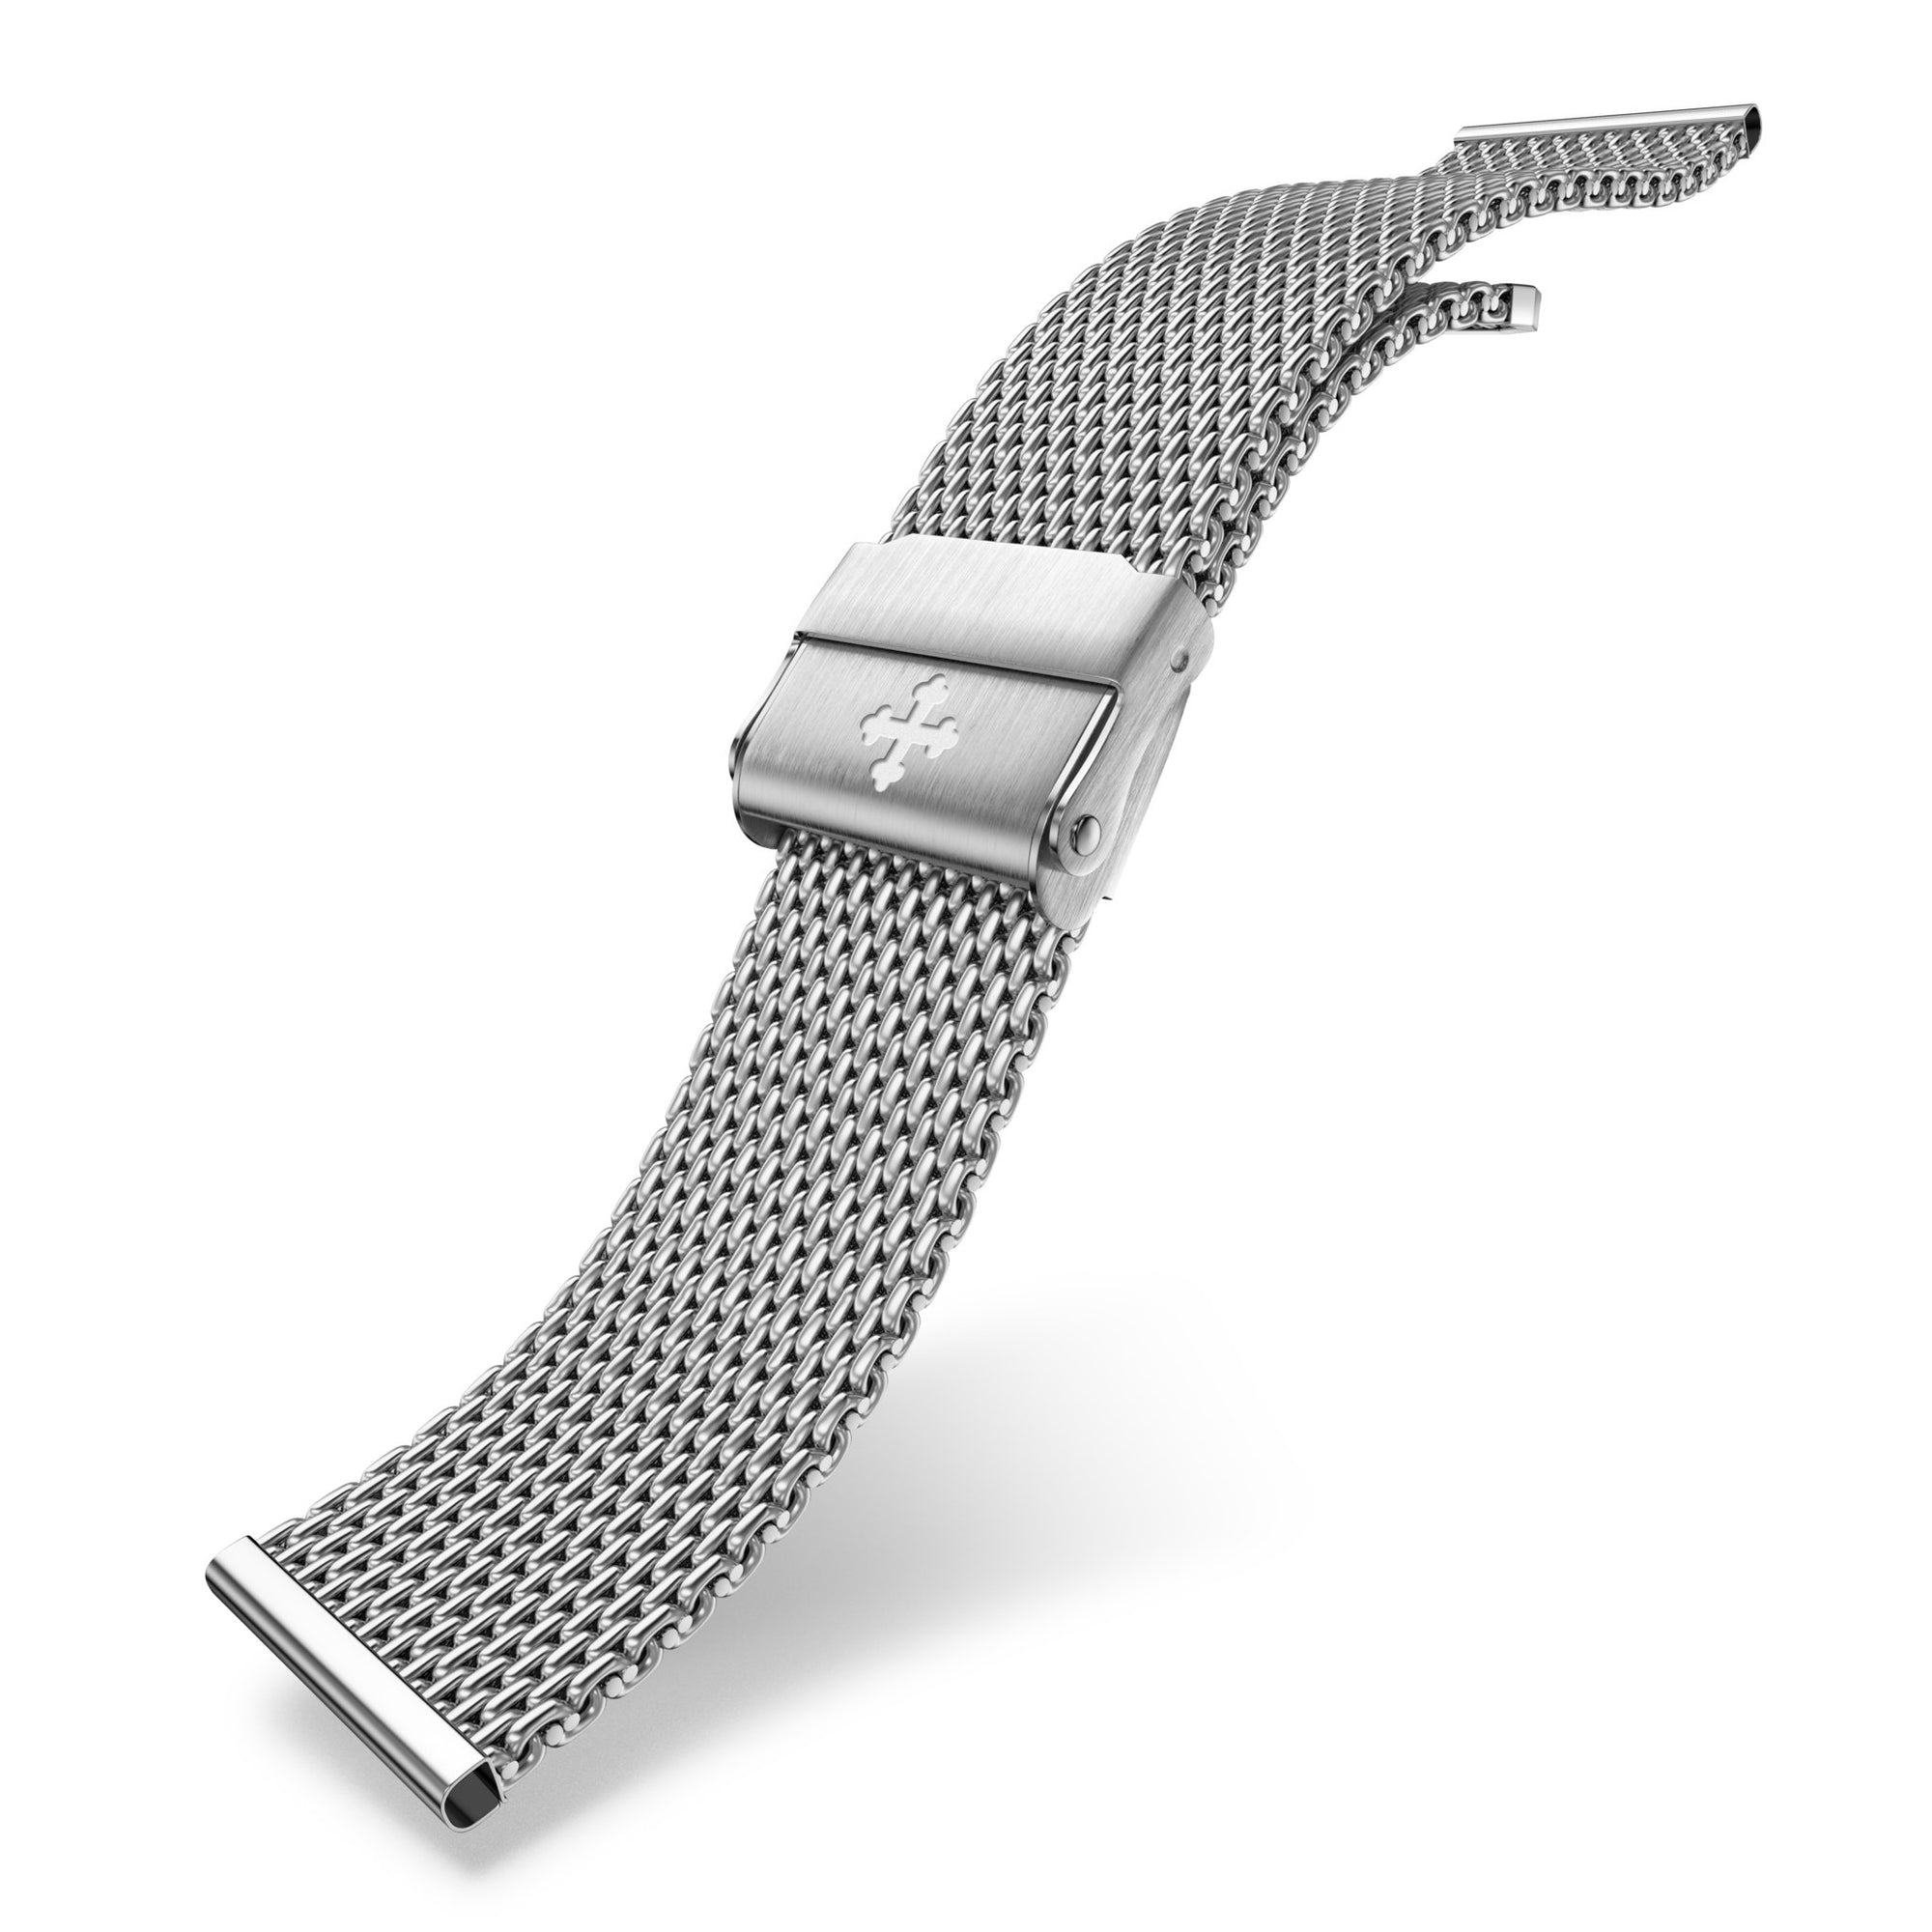 Meccaniche Veneziane Stainless Steel Milanese Mesh Band or Jubilee - Watches & Crystals